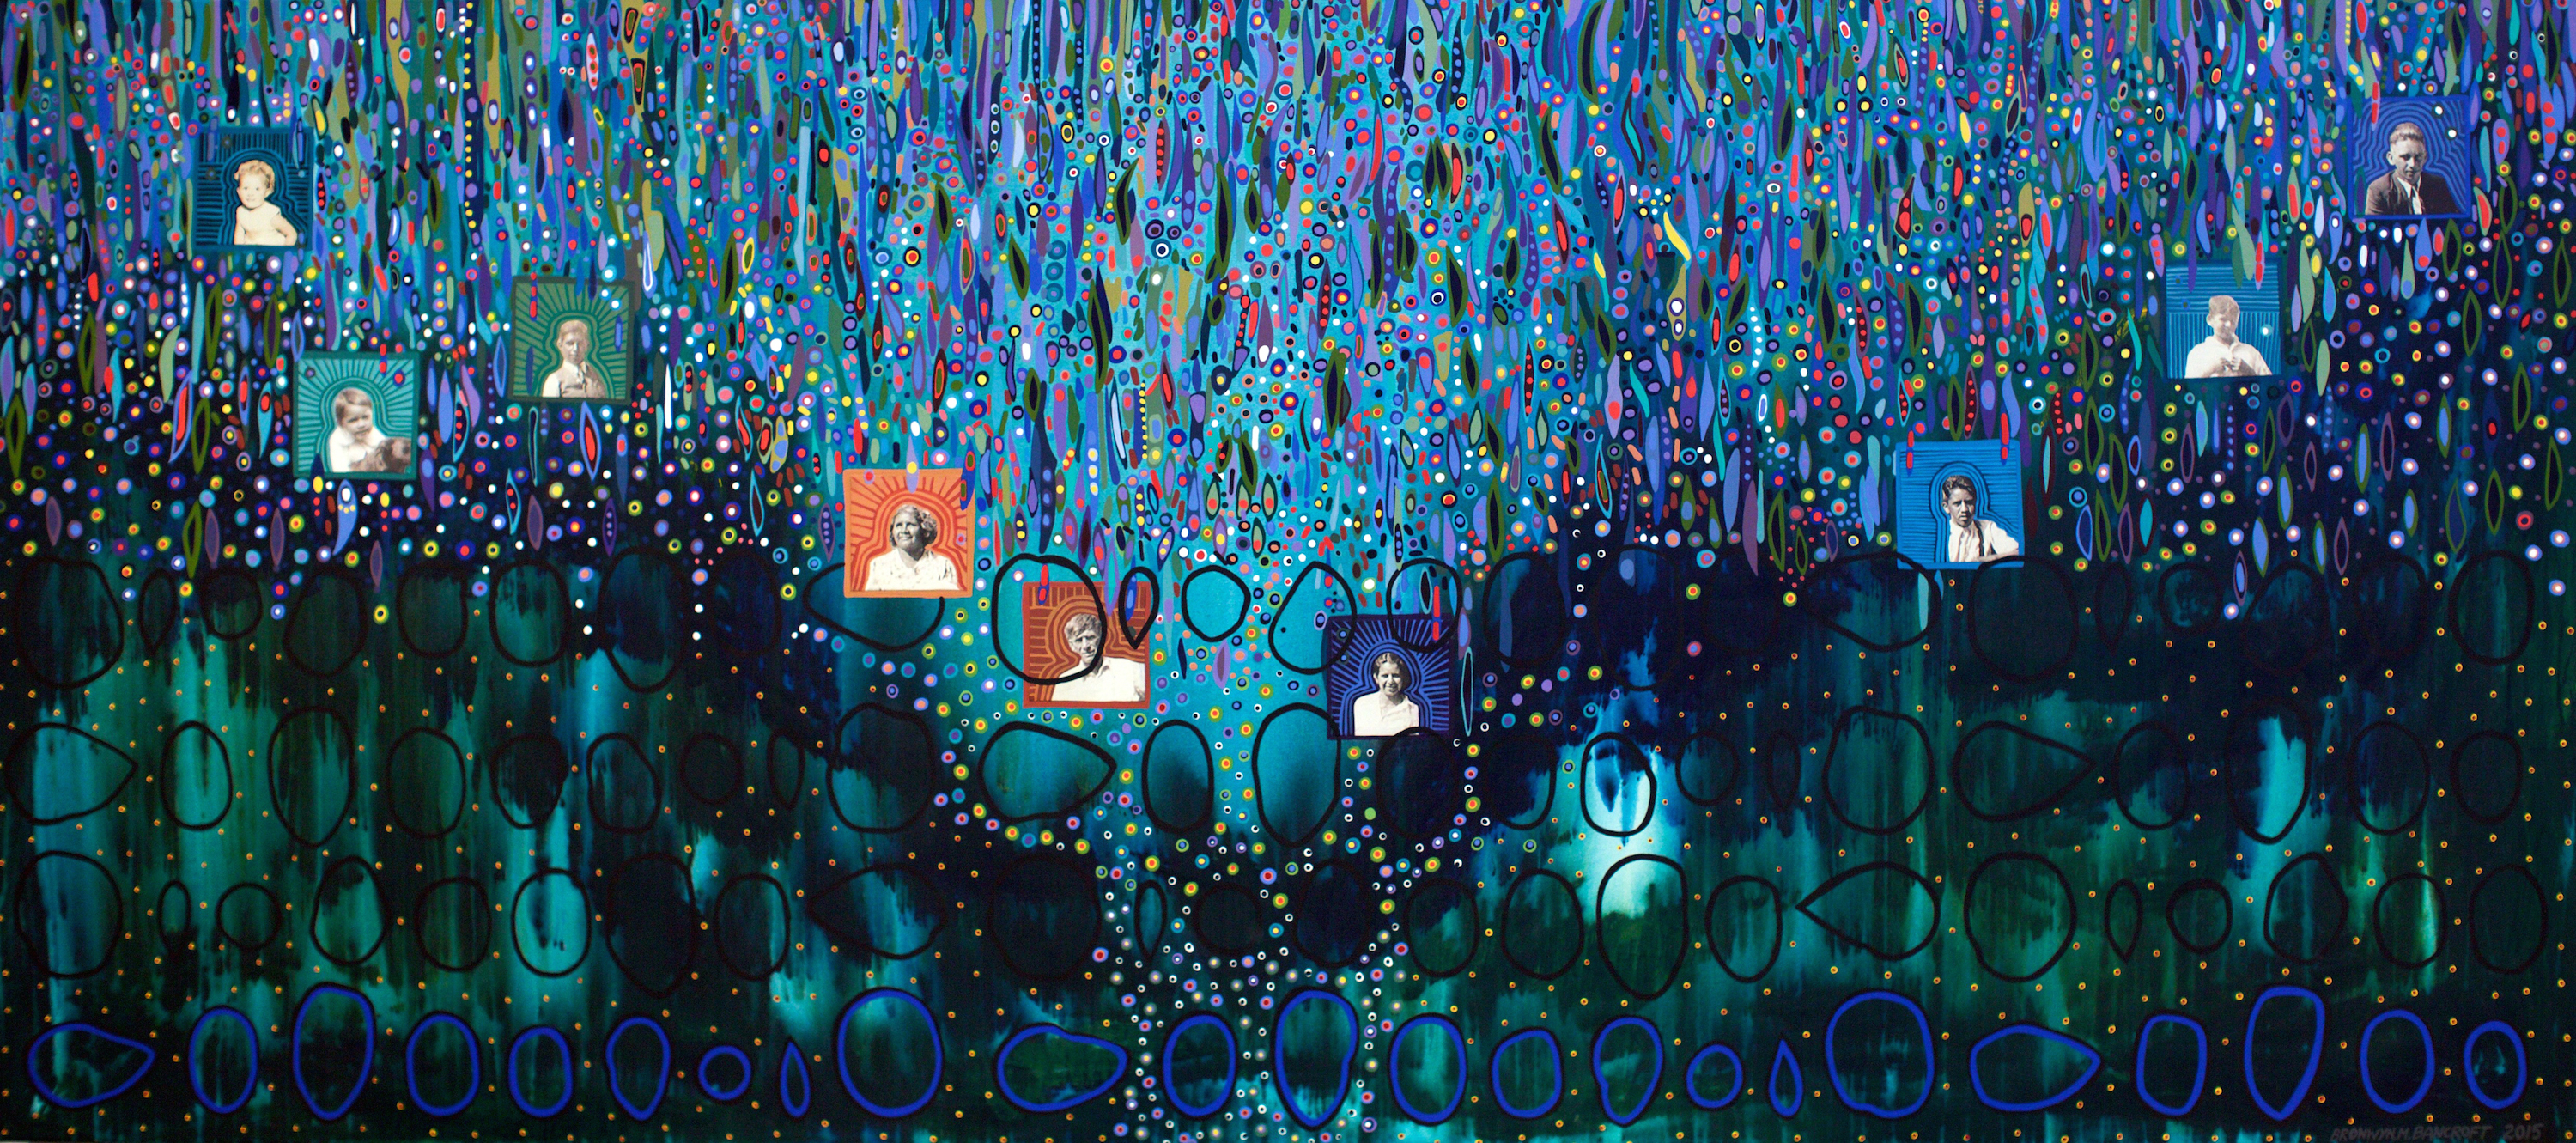 Bronwyn Bancroft, Falling Through Time (Riverstone series), 2012. Courtesy of the artist.